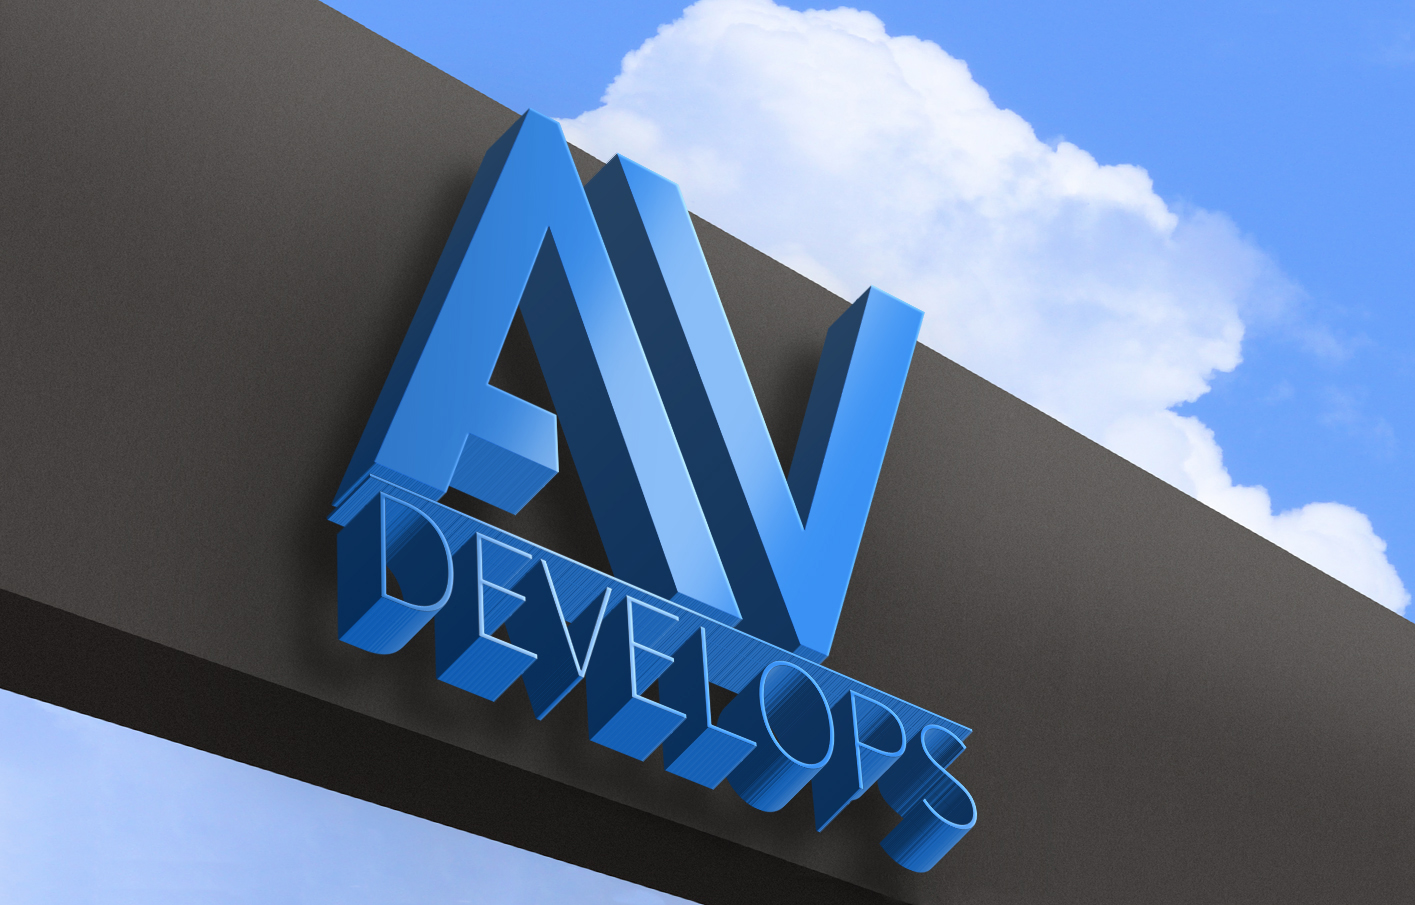 AV Develops 3D Logo